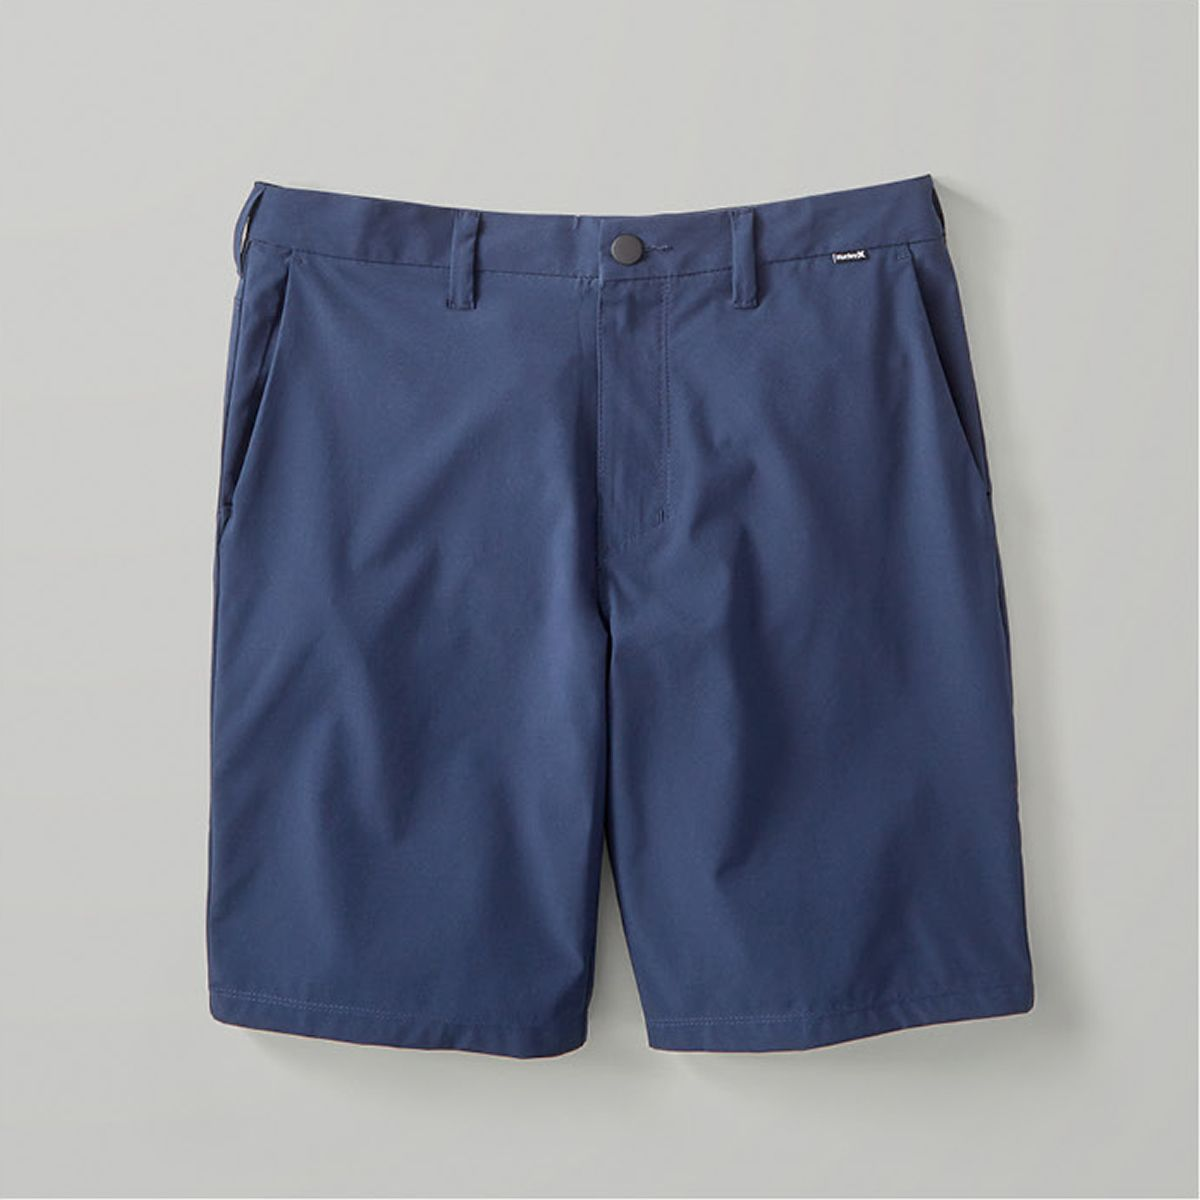 5a80ce921 Mens Swimwear & Men's Swim Trunks - Macy's